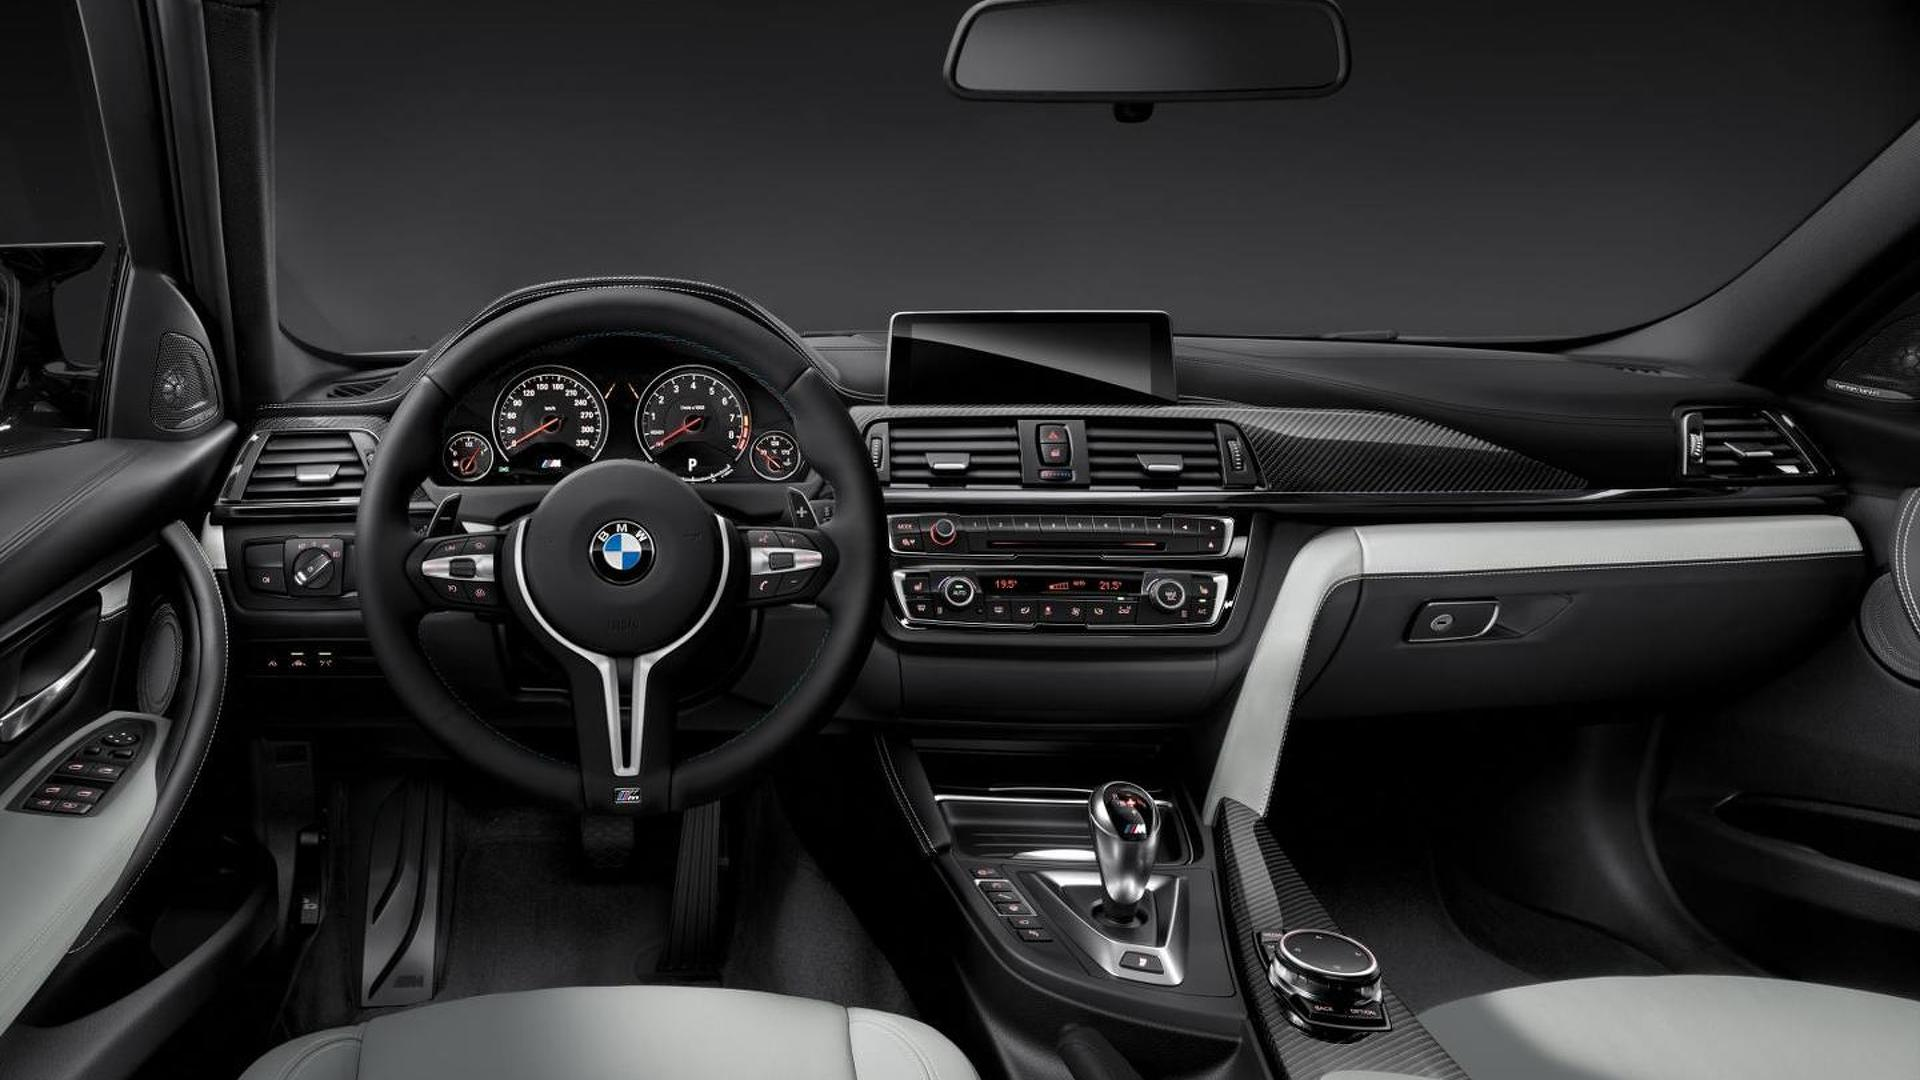 BMW M Sedan And M Coupe Officially Unleashed With HP - Bmw 2014 m3